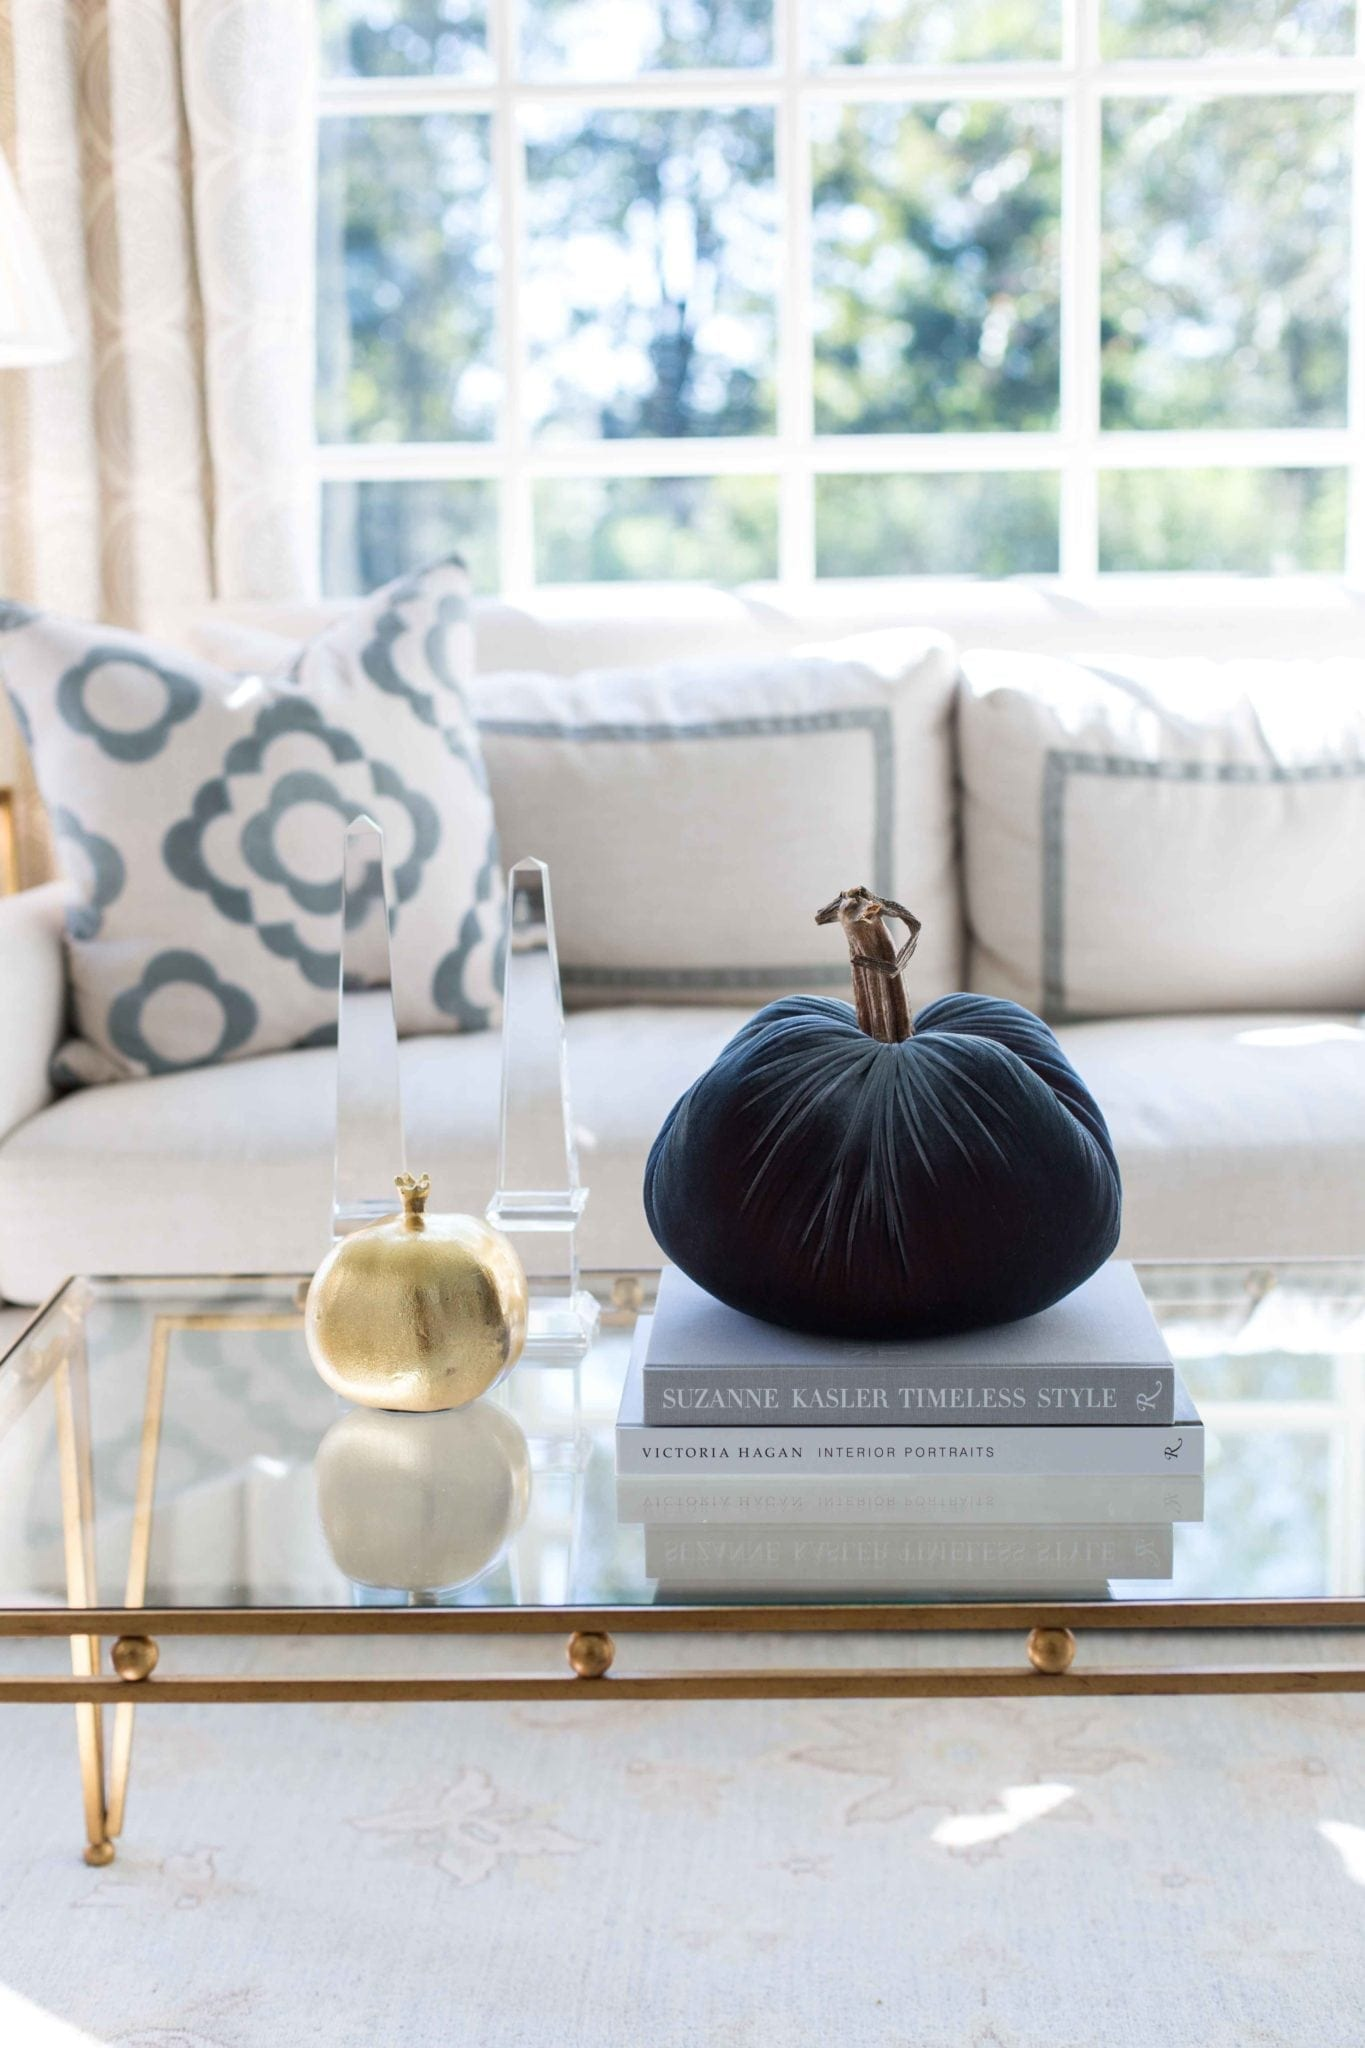 Plush Pumpkin velvet pumpkin exclusive for bluegraygal. Elegant and simple fall decor with a hint of rustic elegance! Gorgeous as a home decor decoration for the fall season or for setting a Thanksgiving table!